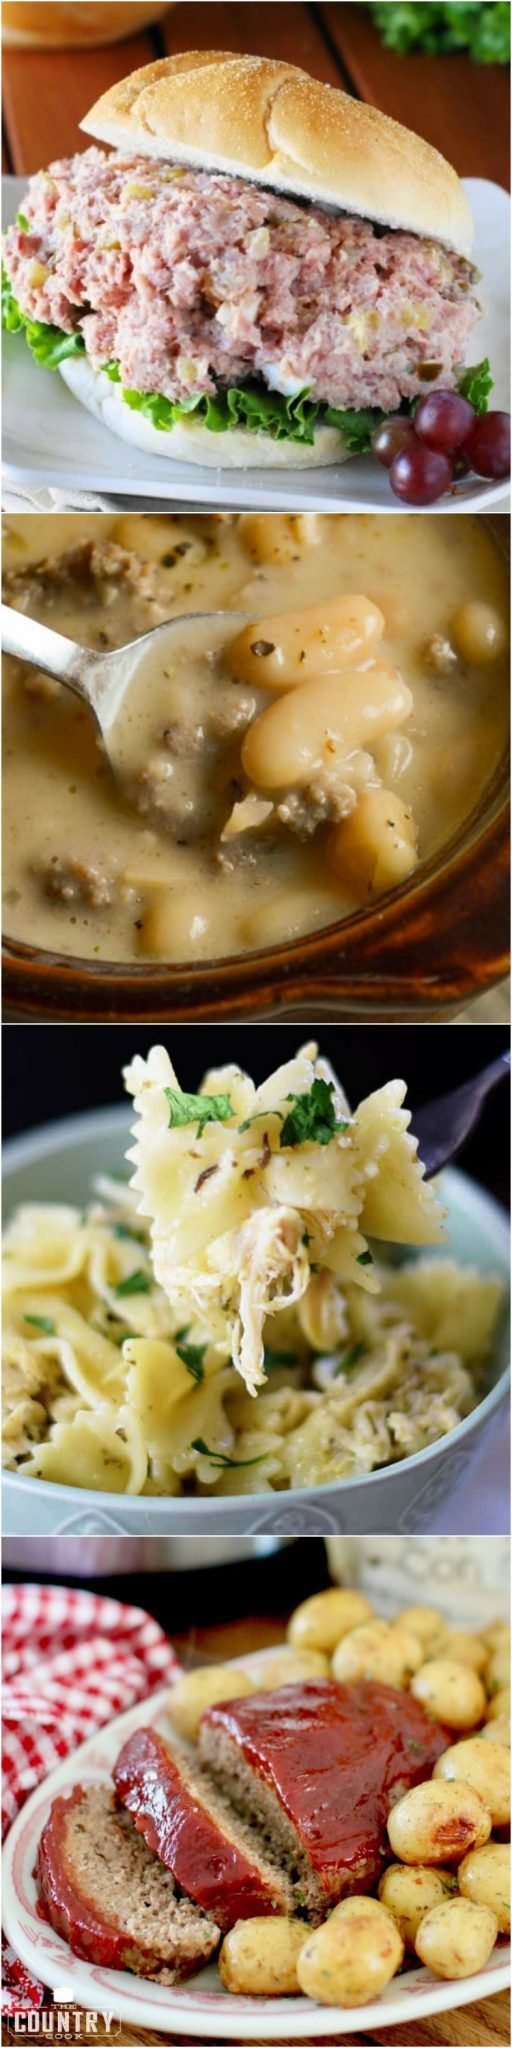 Featured recipes at Weekend Potluck include: Ham Salad, Tuscan Sausage and White Bean Soup, Instant Pot Meatloaf and Potatoes, Slow Cooker Chicken Pesto Pasta #dinner #mealplan #recipe #ideas